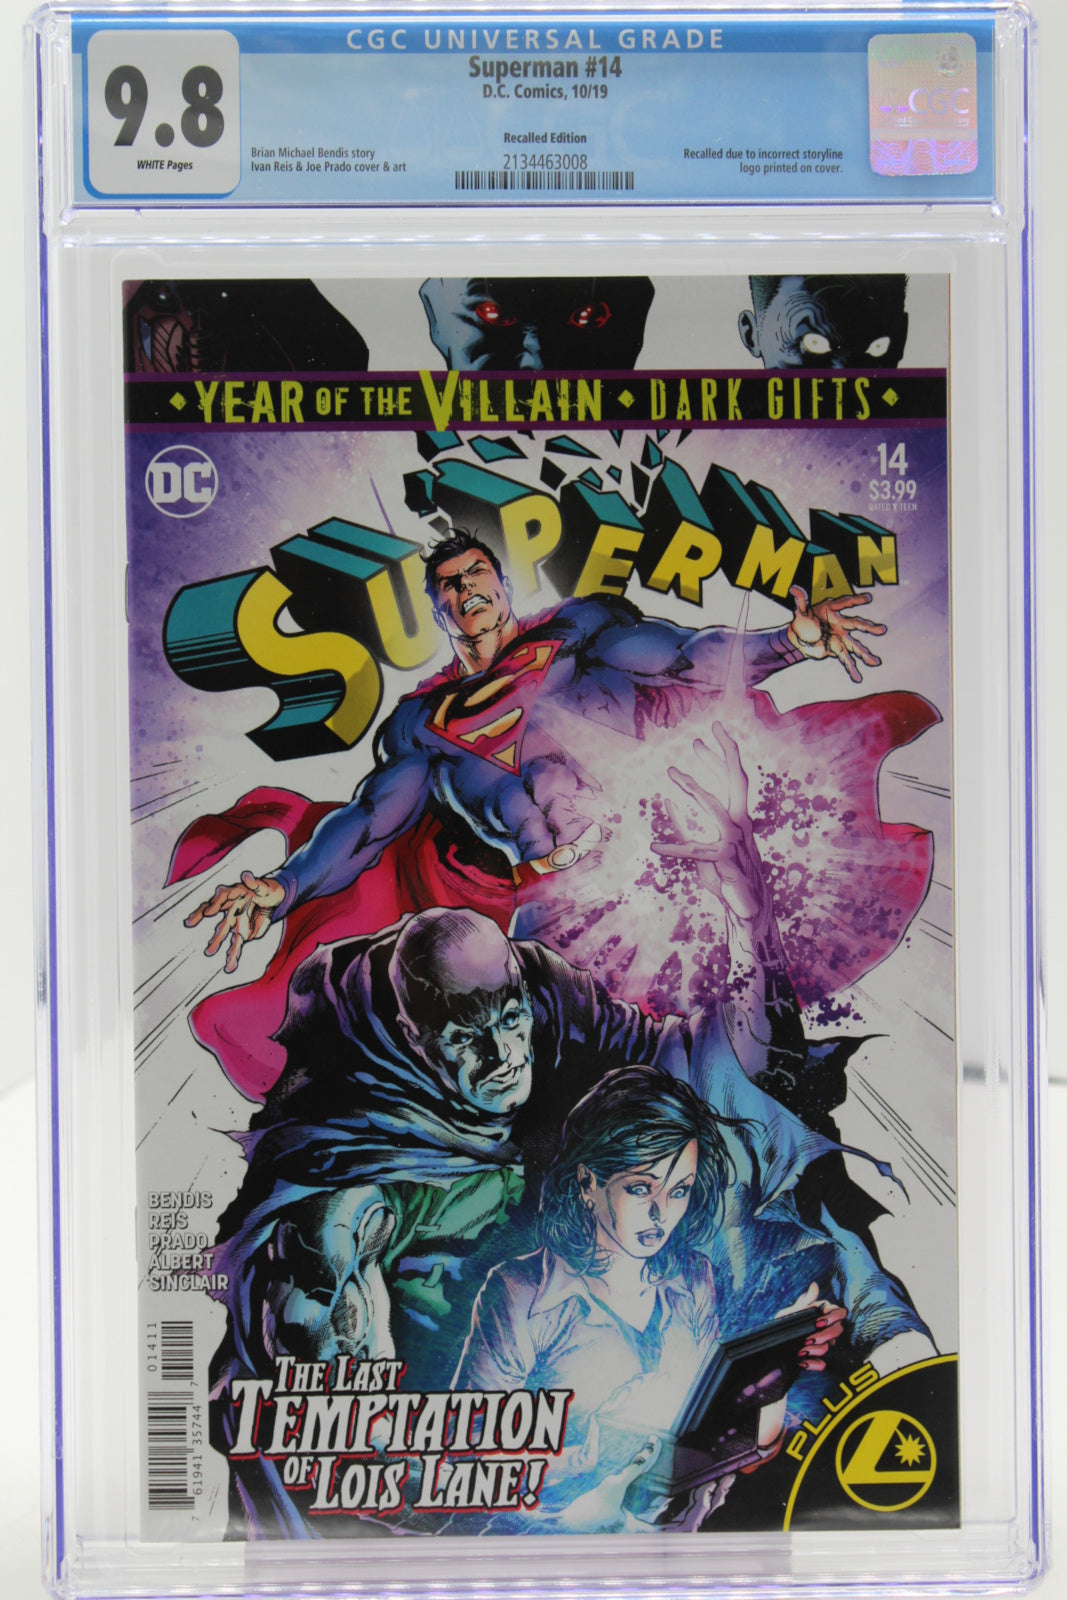 Superman #14 - Recalled Edition, CGC 9.8 White Pages